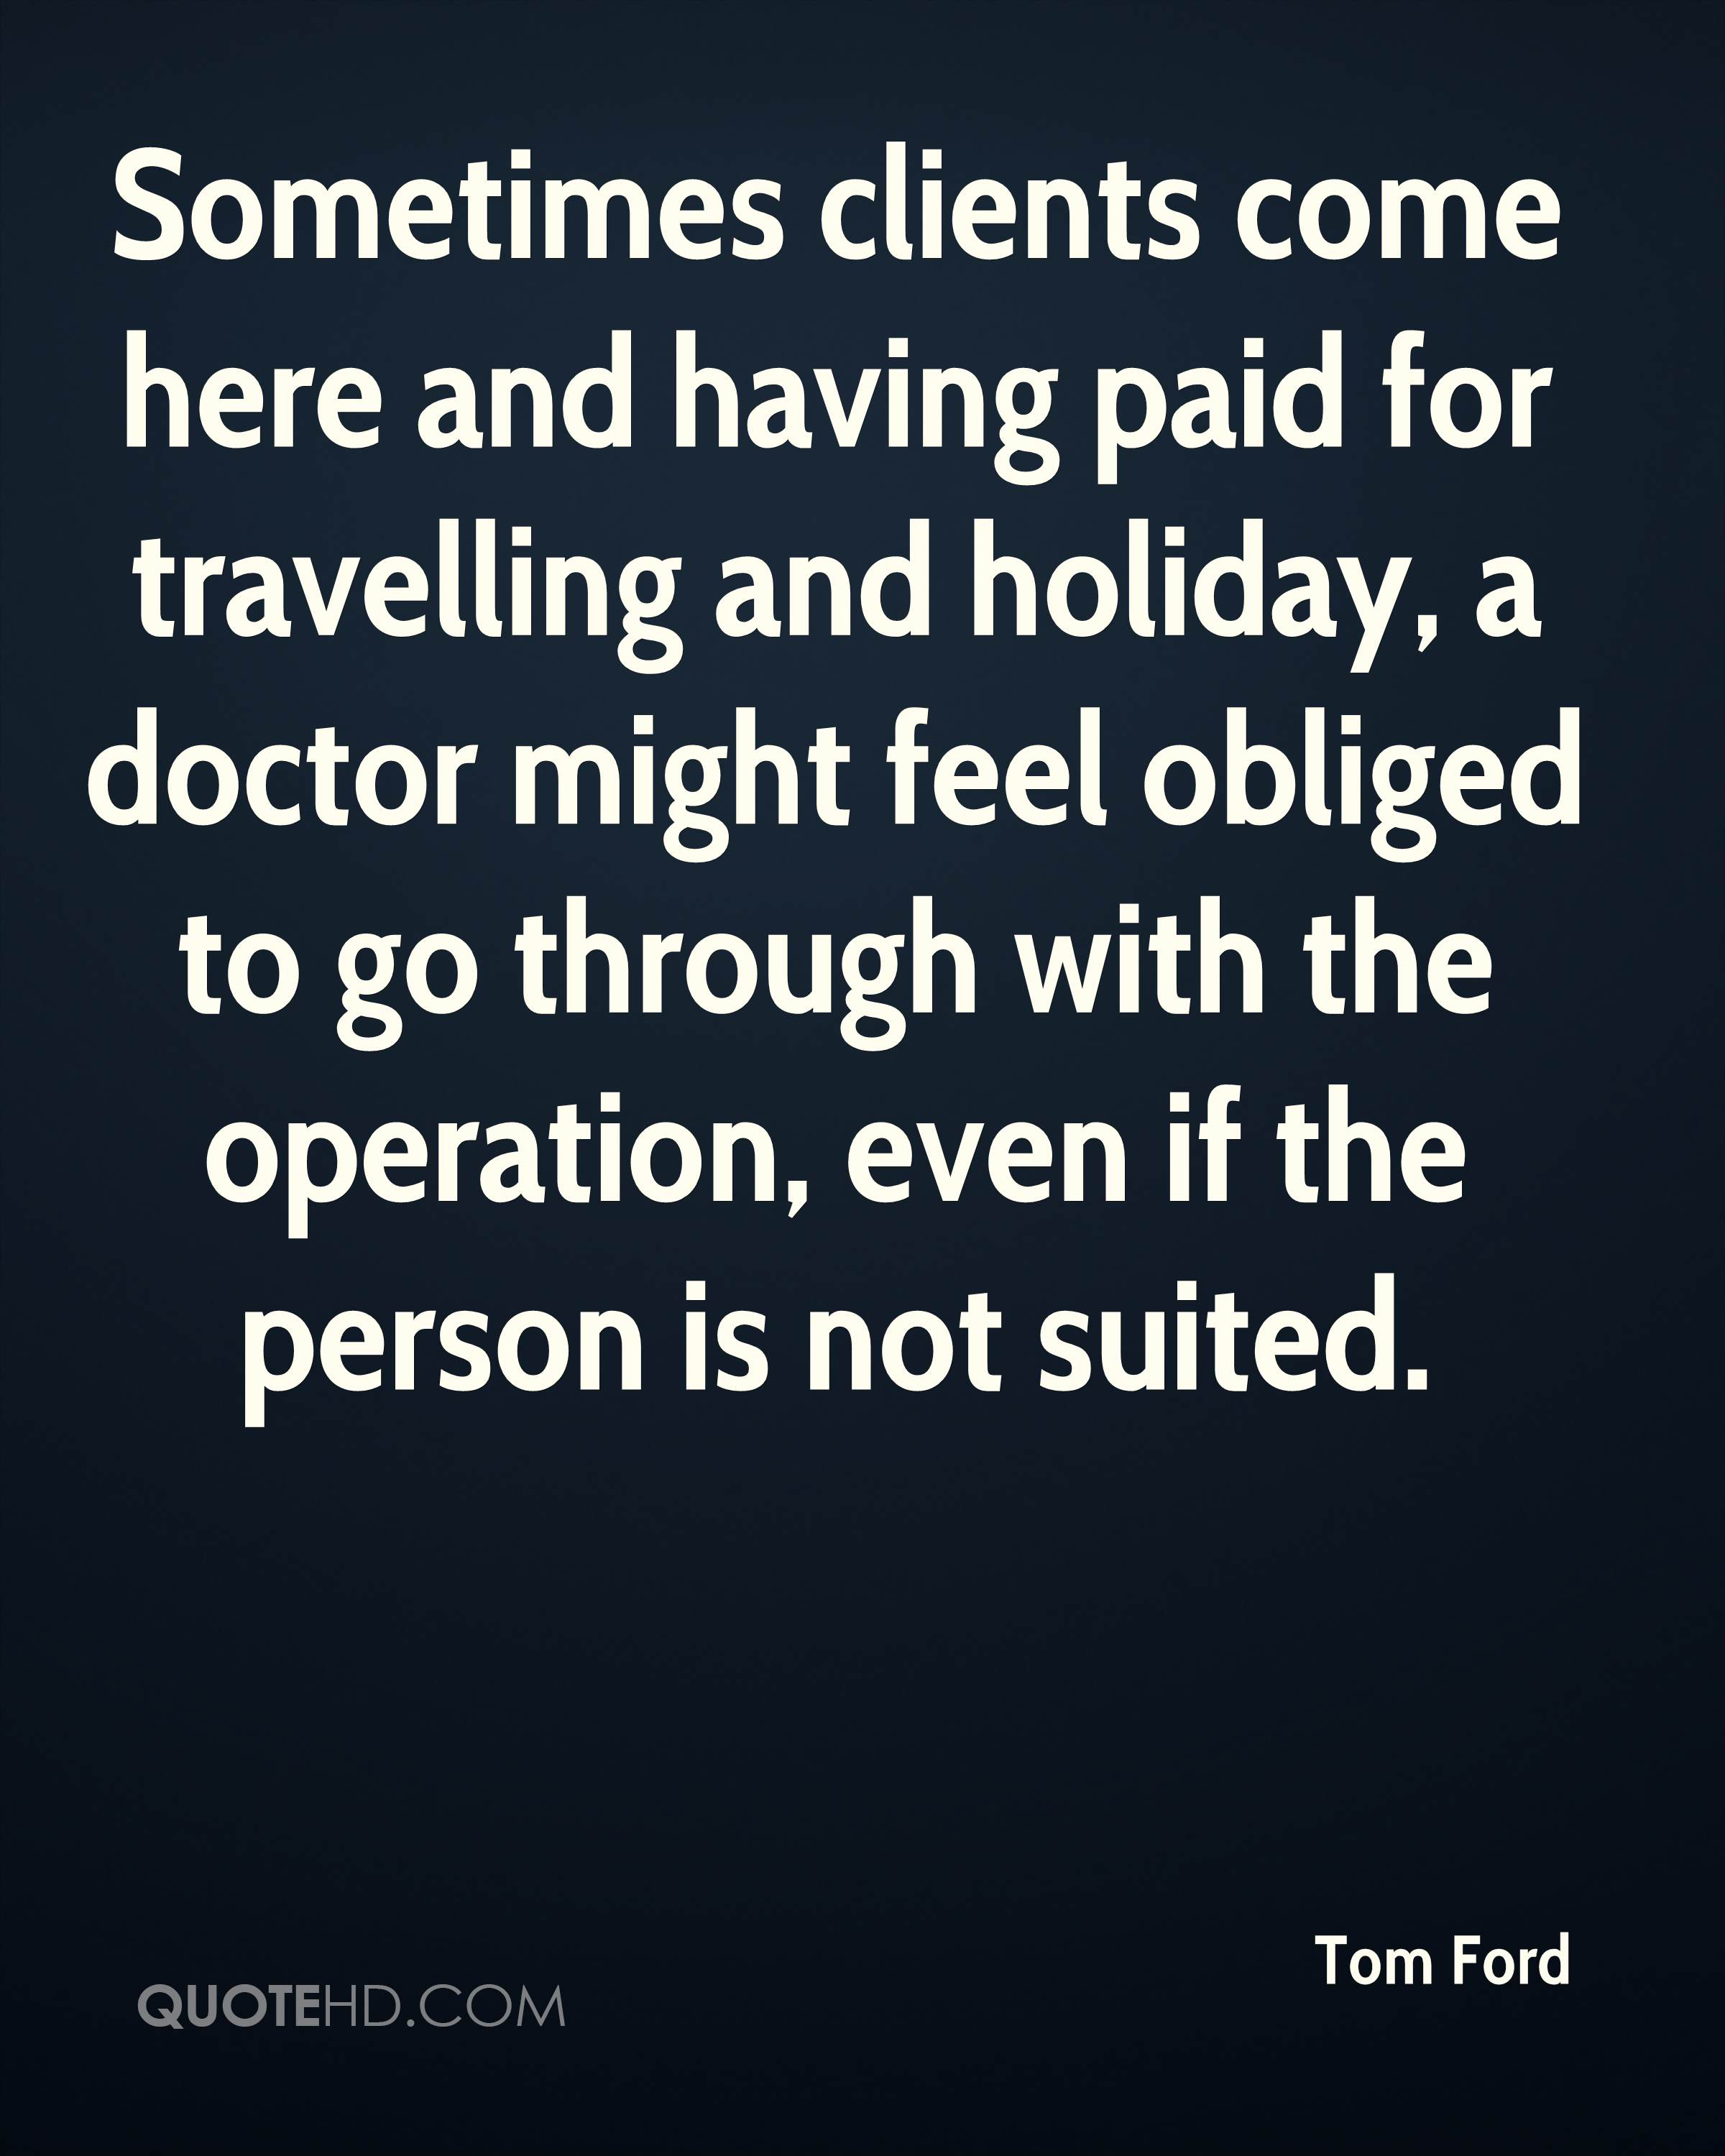 Sometimes clients come here and having paid for travelling and holiday, a doctor might feel obliged to go through with the operation, even if the person is not suited.